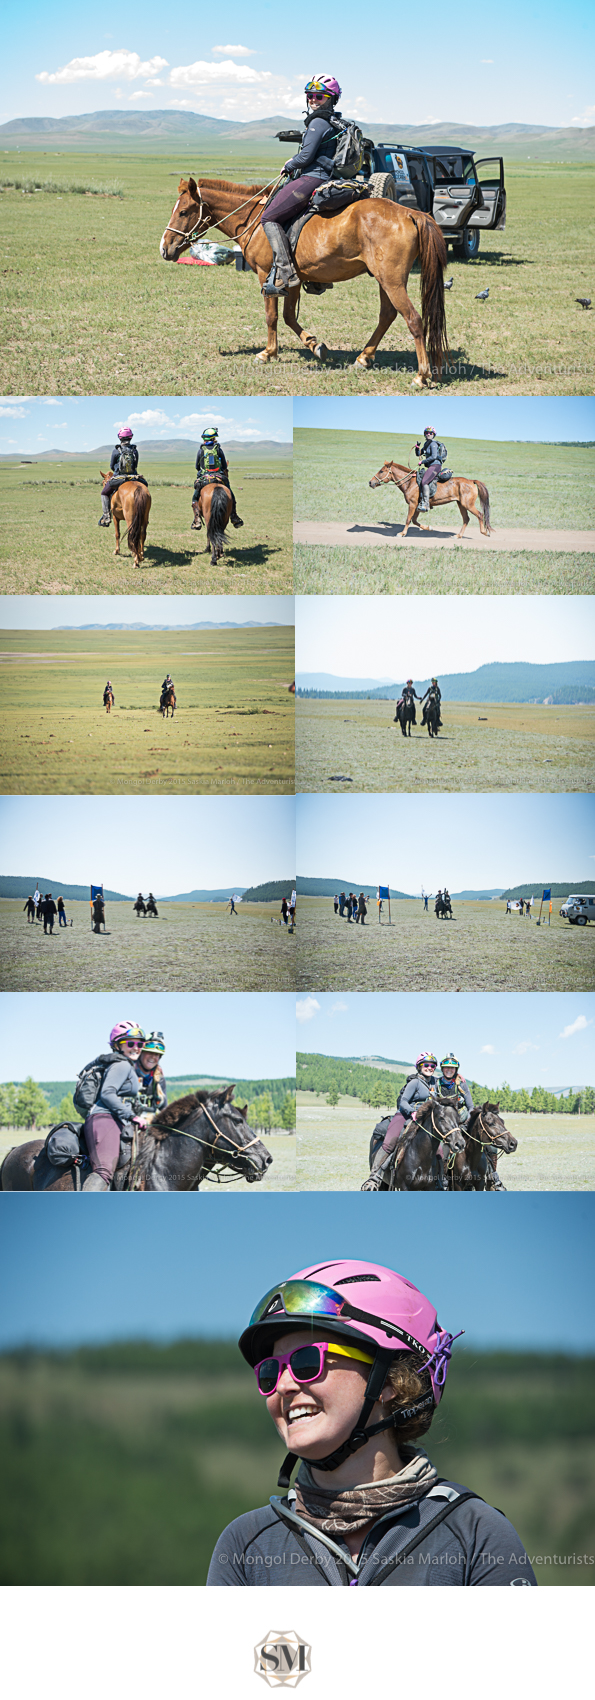 Cassie Ekert at the Mongol Derby 2015 photos by Saskia Marloh